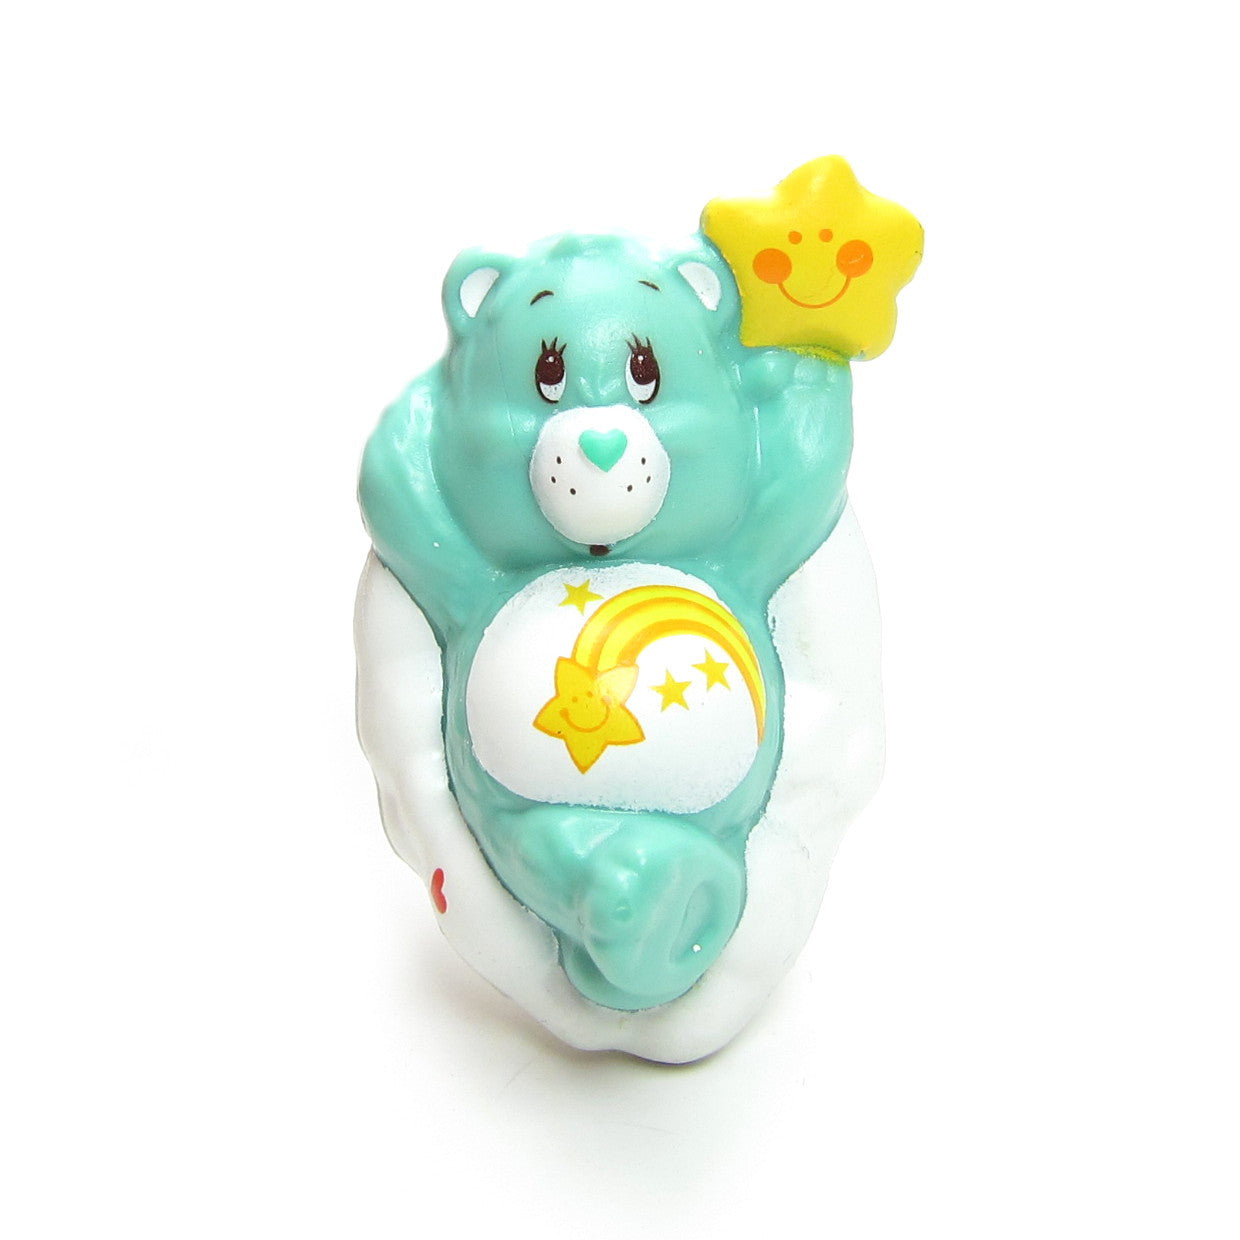 Wish Bear Wishing on a Cloud miniature figurine